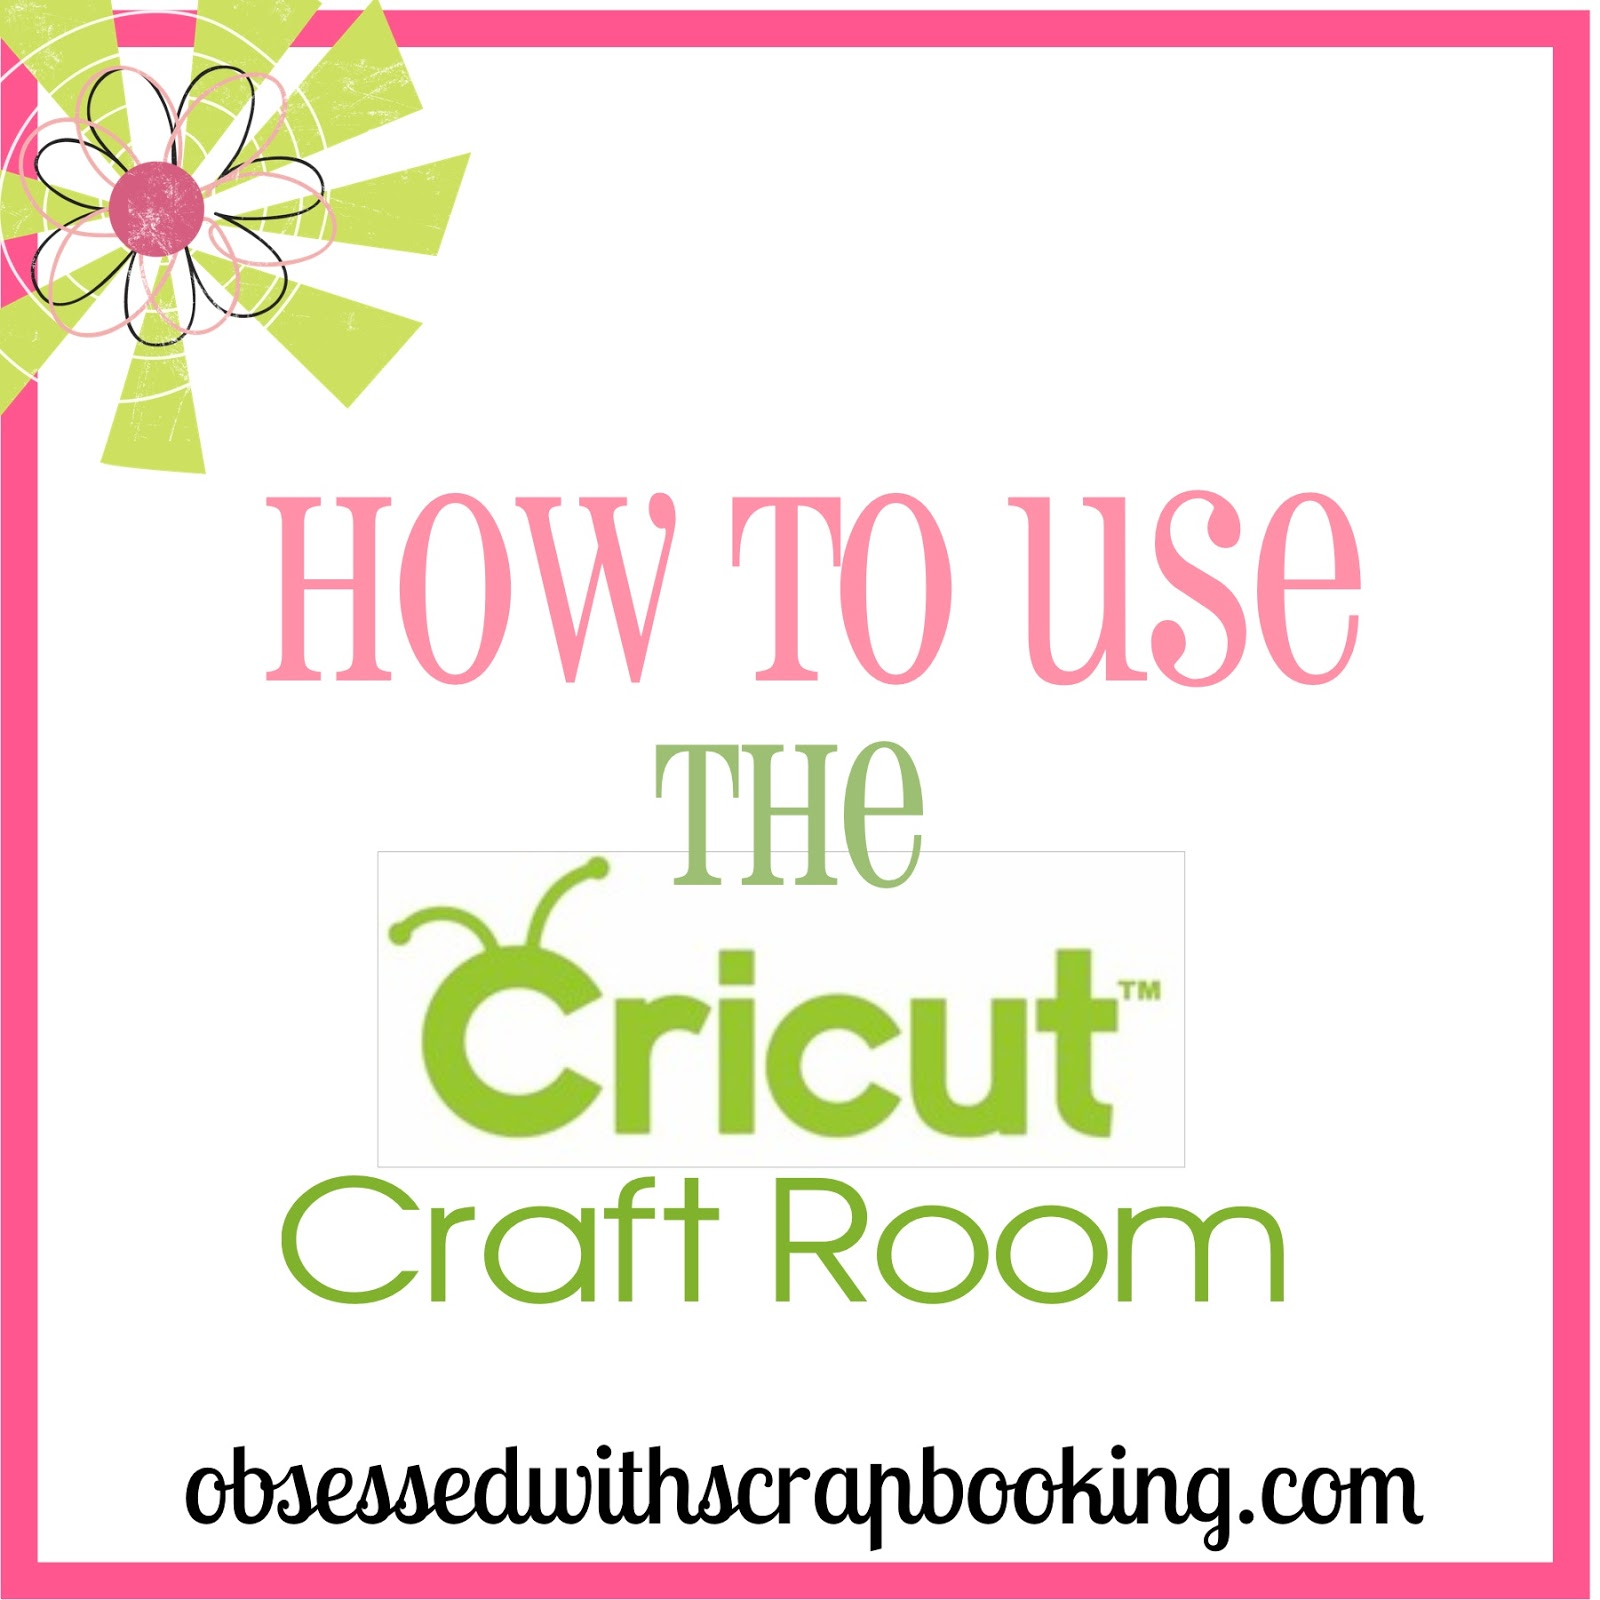 Obsessed with scrapbooking video make colored for Cricut craft room download